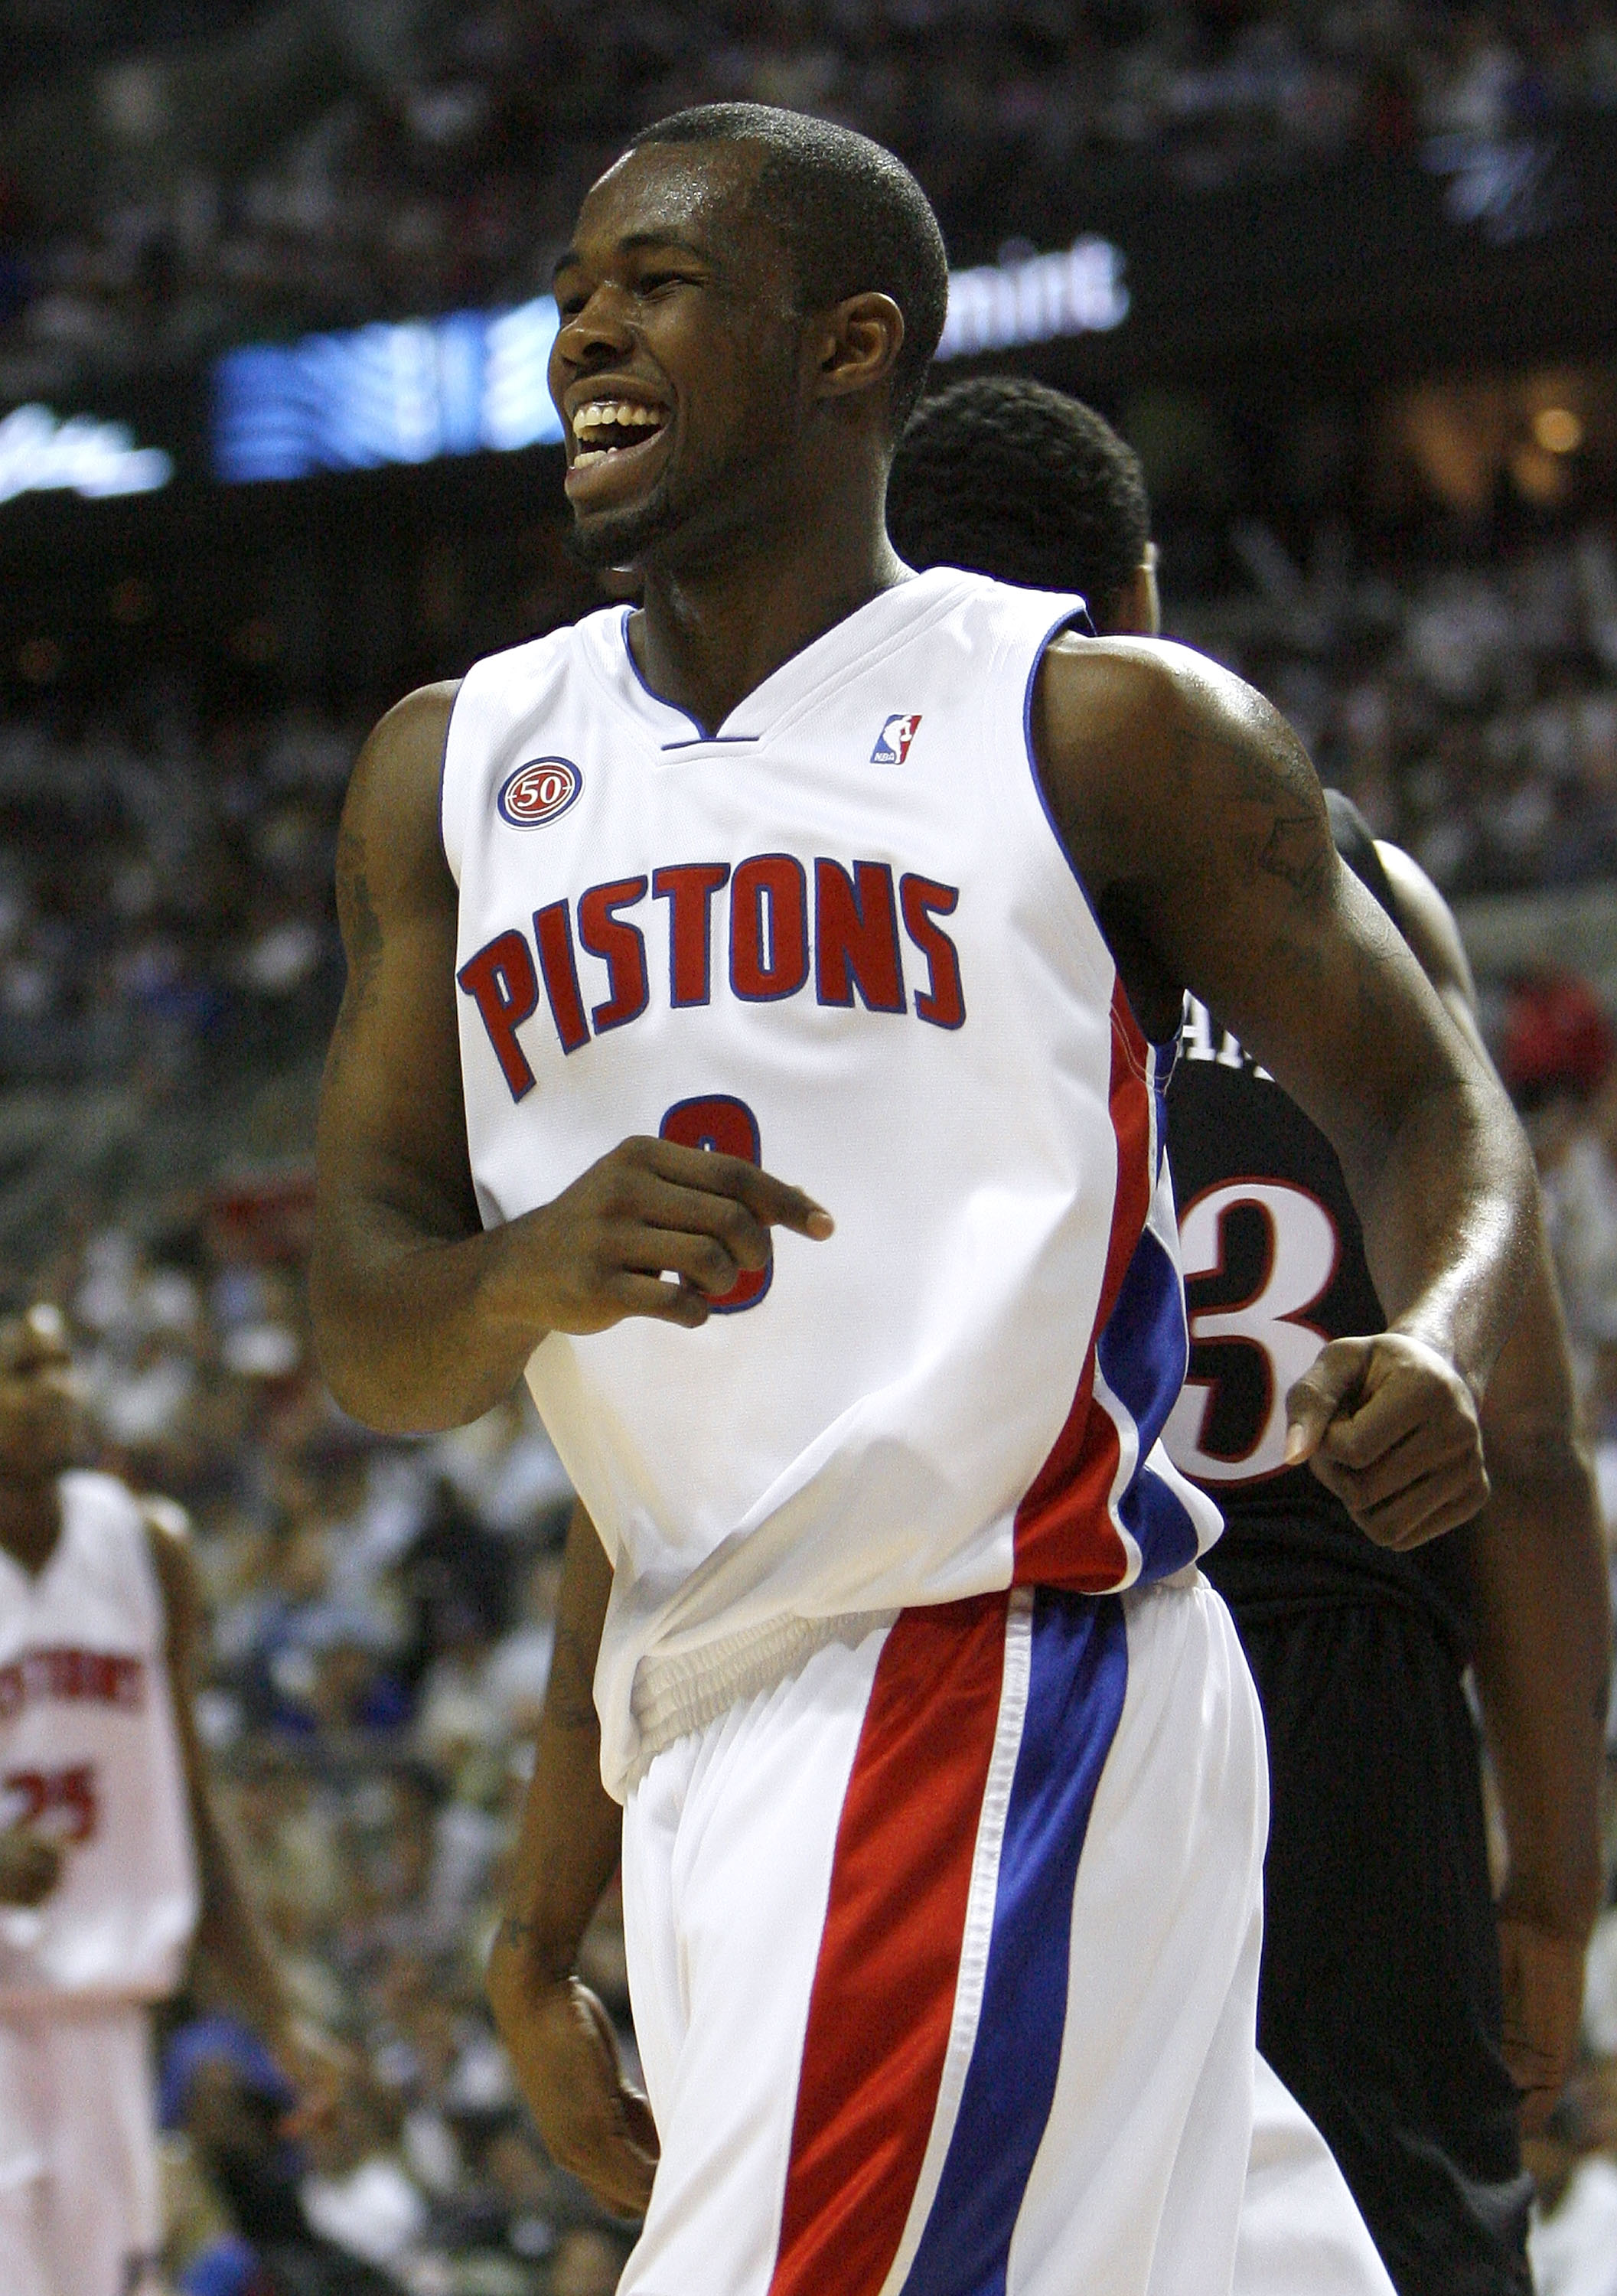 AUBURN HILLS, MI - APRIL 23:  Rodney Stuckey #3 of the Detroit Pistons smiles after a fourth quarter basket against the Philadelphia 76ers in Game Two of the Eastern Conference Quarterfinals during the 2008 NBA Playoffs at the Palace of Auburn Hills on Ap